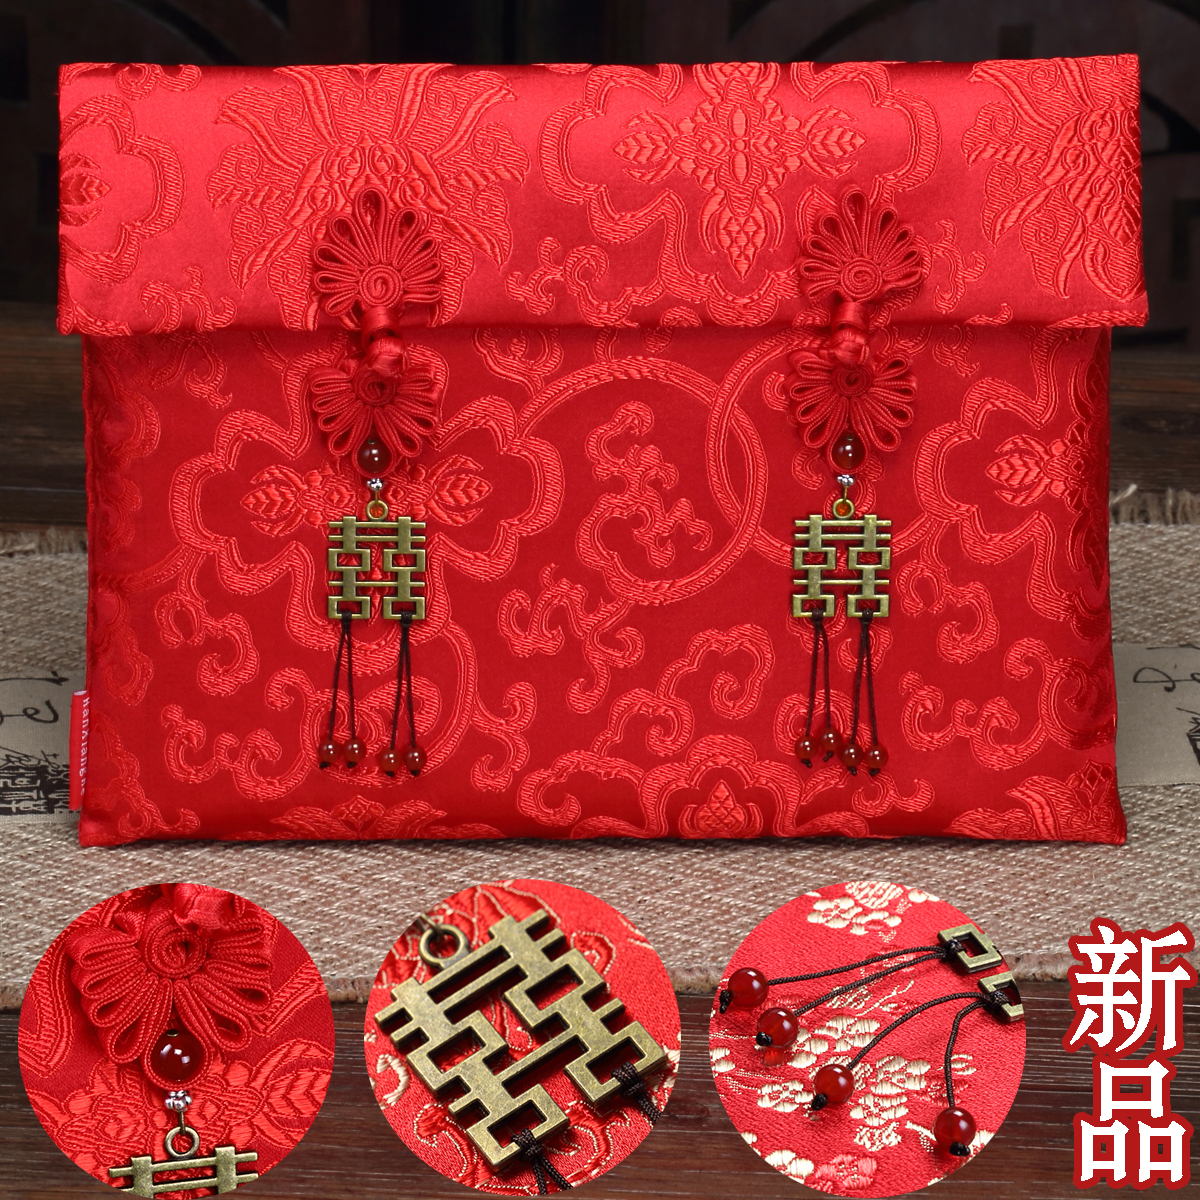 usd 17 29 han xiang and hi word red envelopes wedding creative red